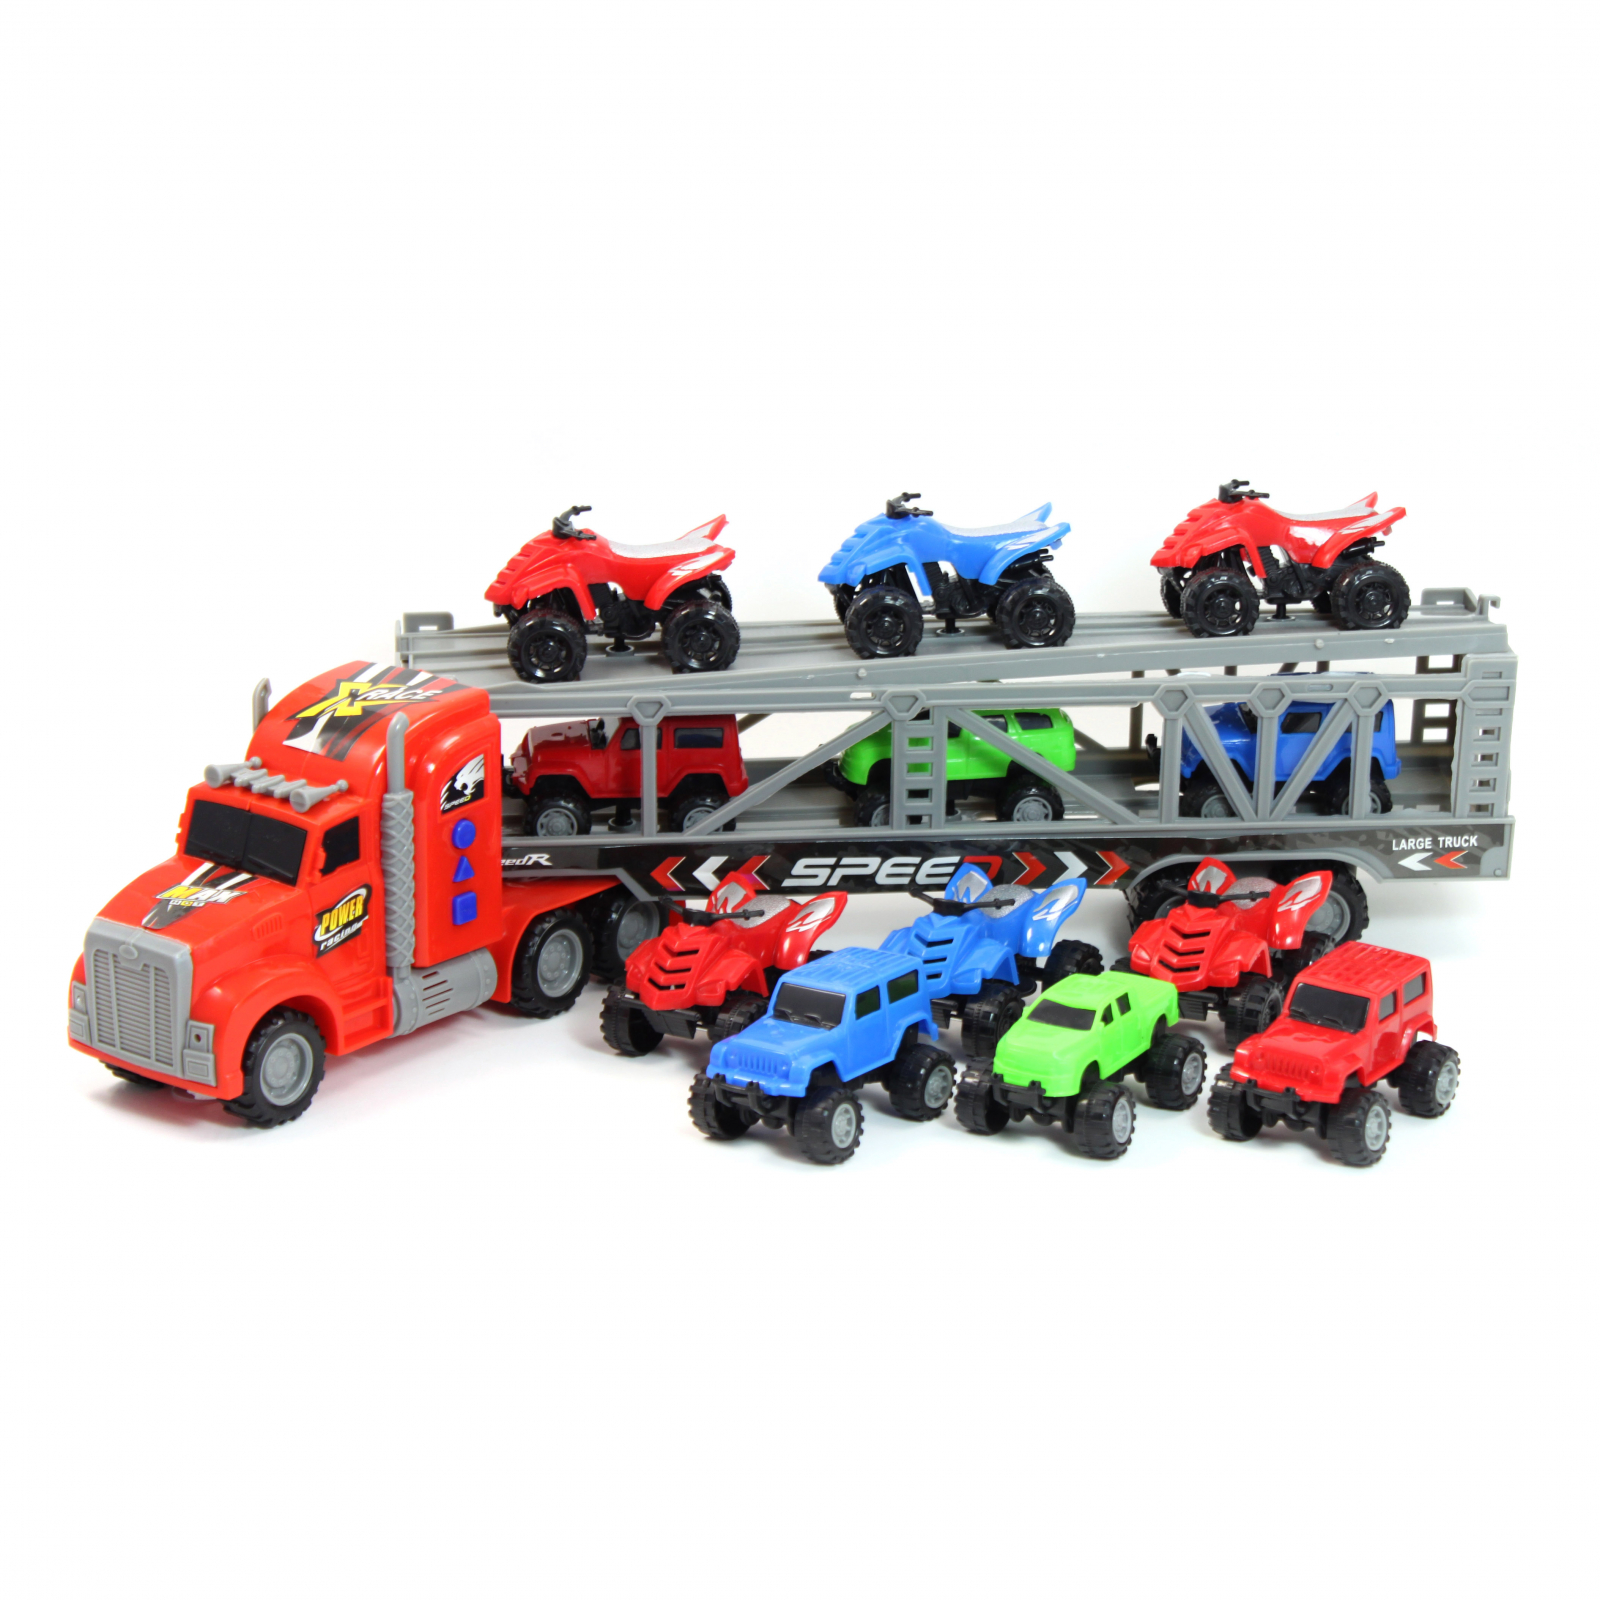 Toy Truck Diecast ATV Semi Truck Transporter Carrier Friction Power Vehicle